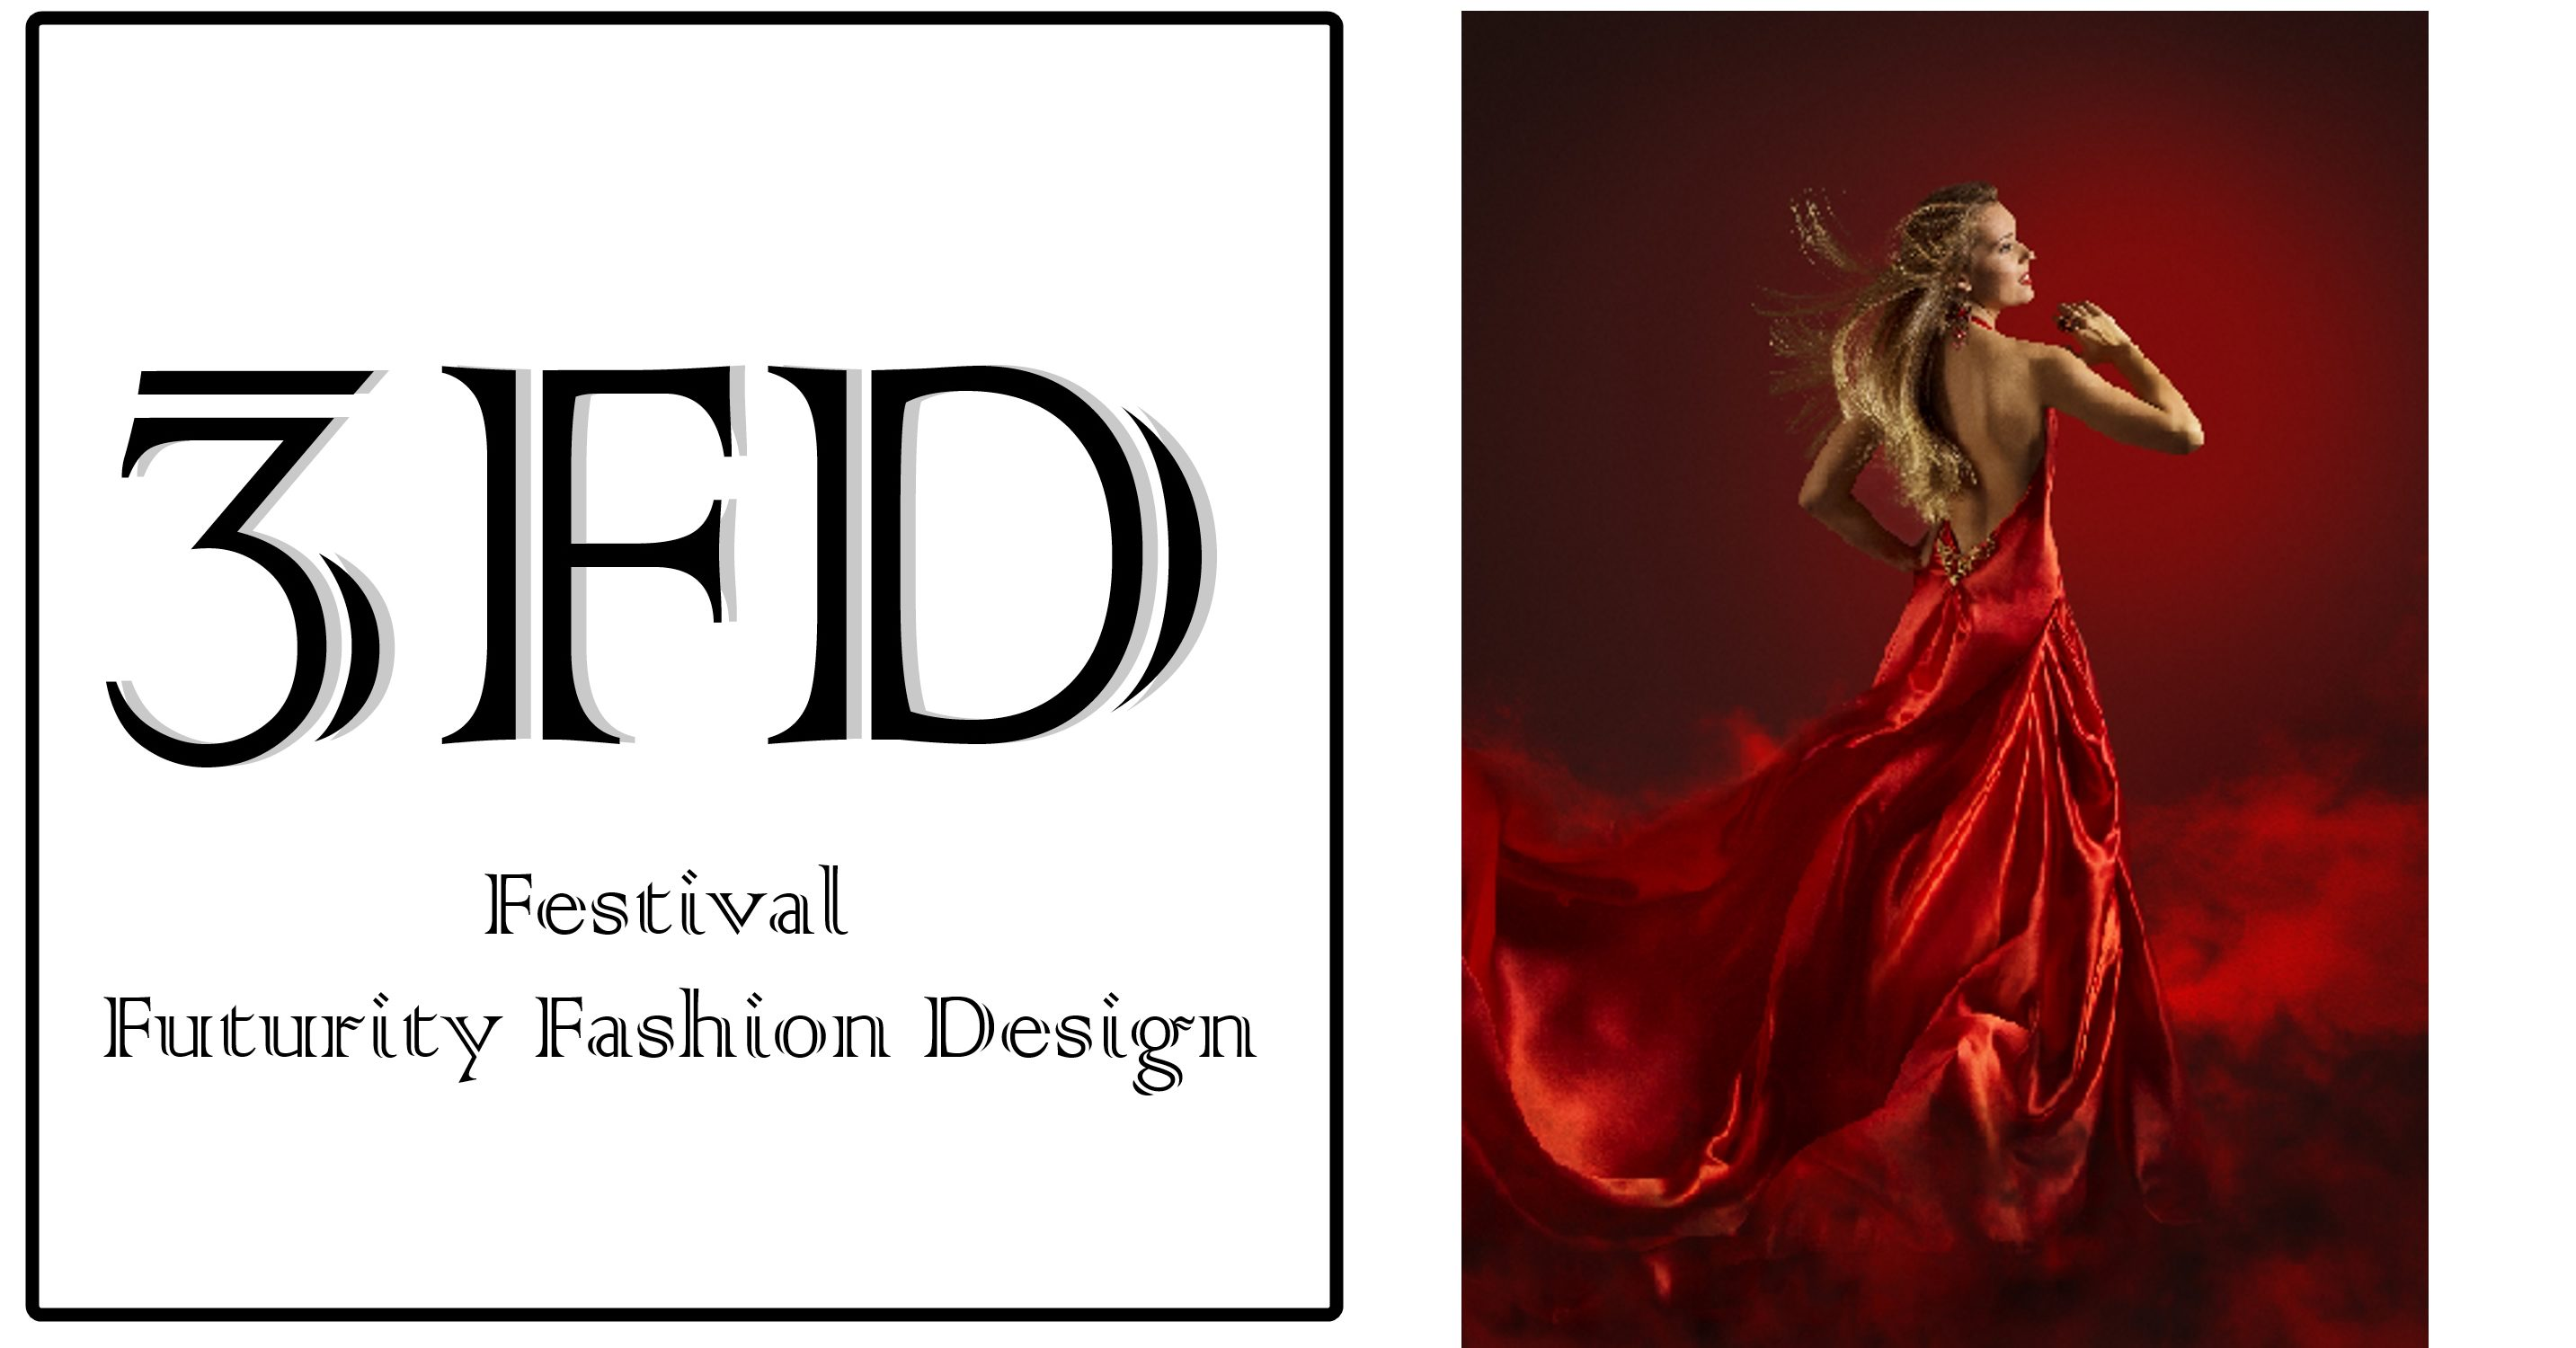 Futurity Fashion Design